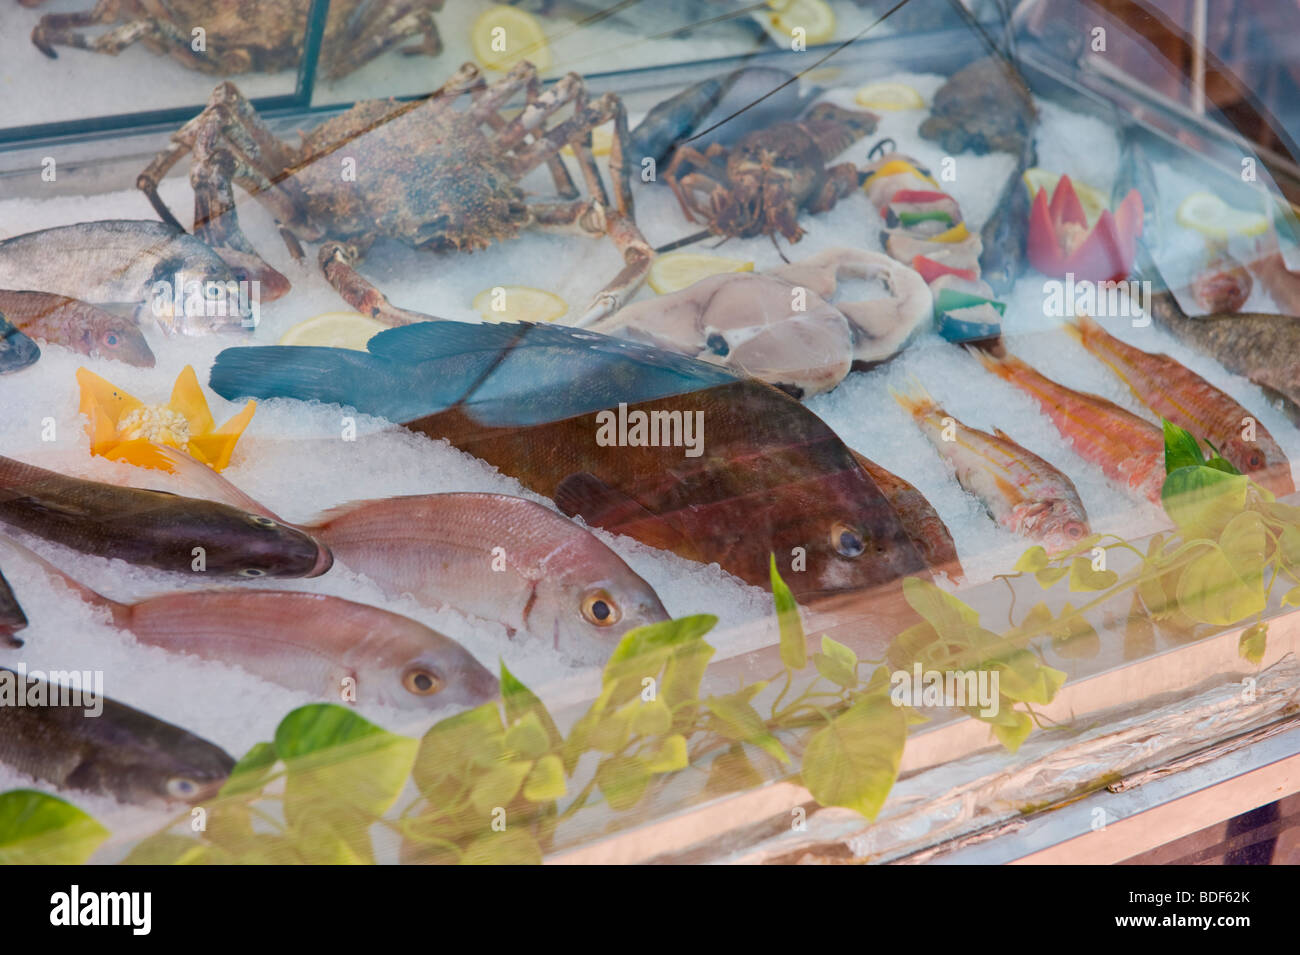 9880cf0e850c Fresh fish displayed for selection by diners in chill counter outside  restaurant in Katelios on the Greek island of Kefalonia